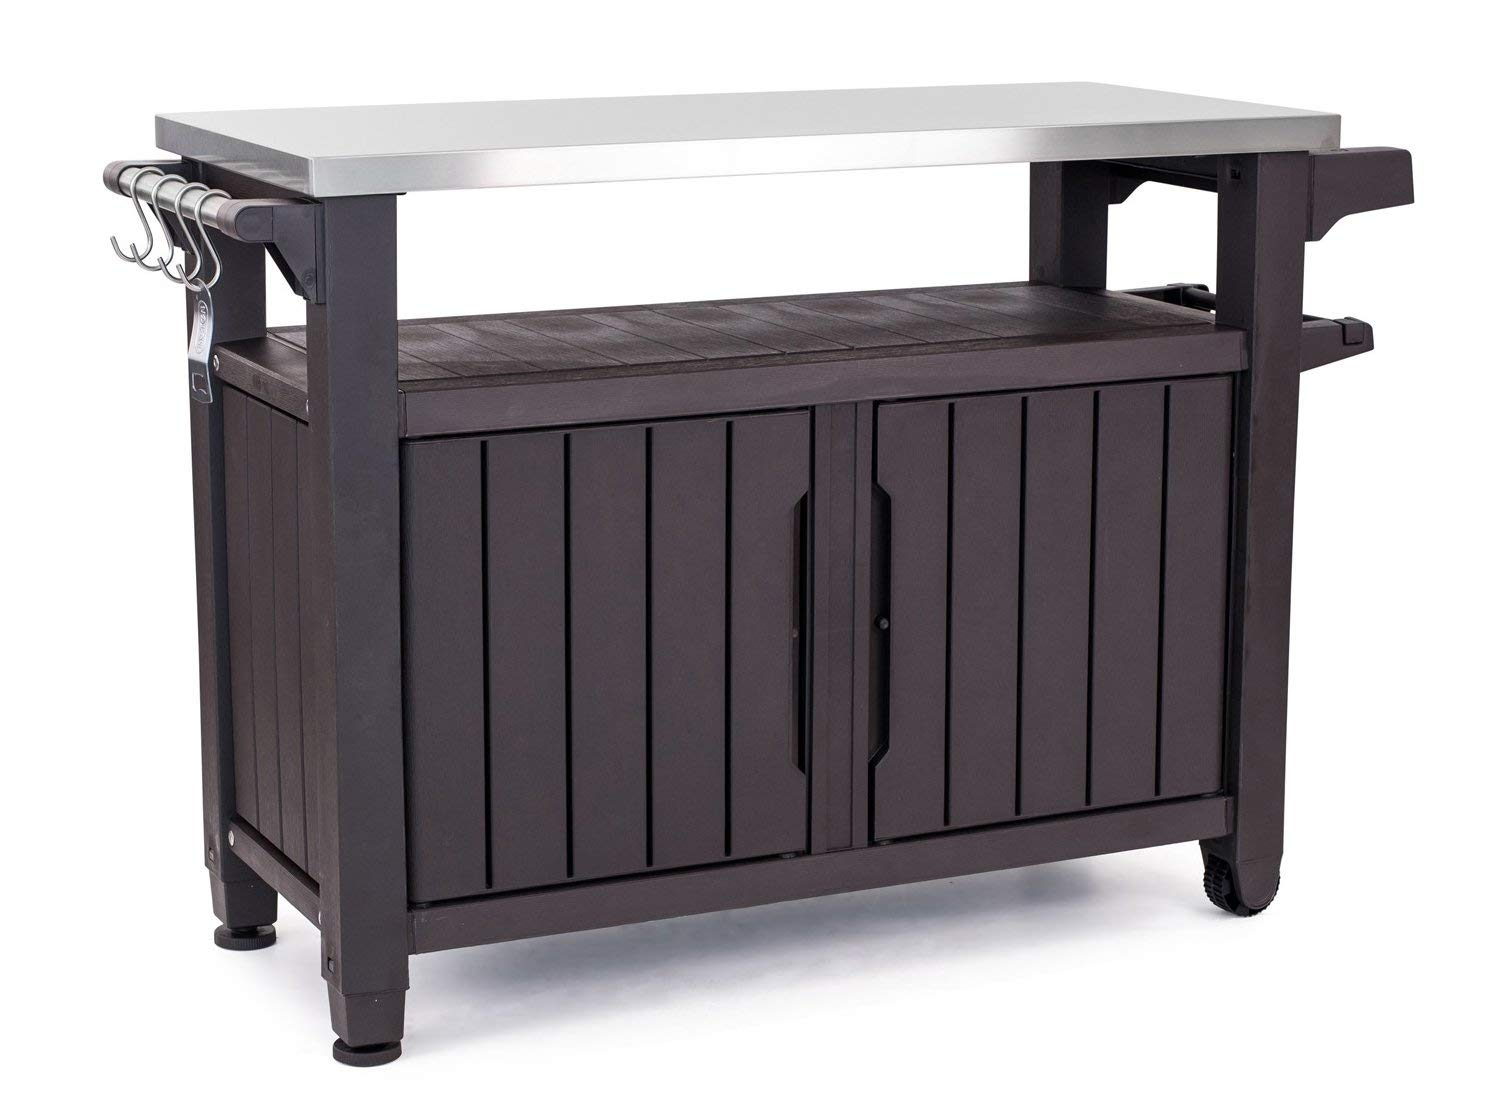 Merveilleux [Reviews]Keter Unity XL Indoor Outdoor Entertainment BBQ Storage Table